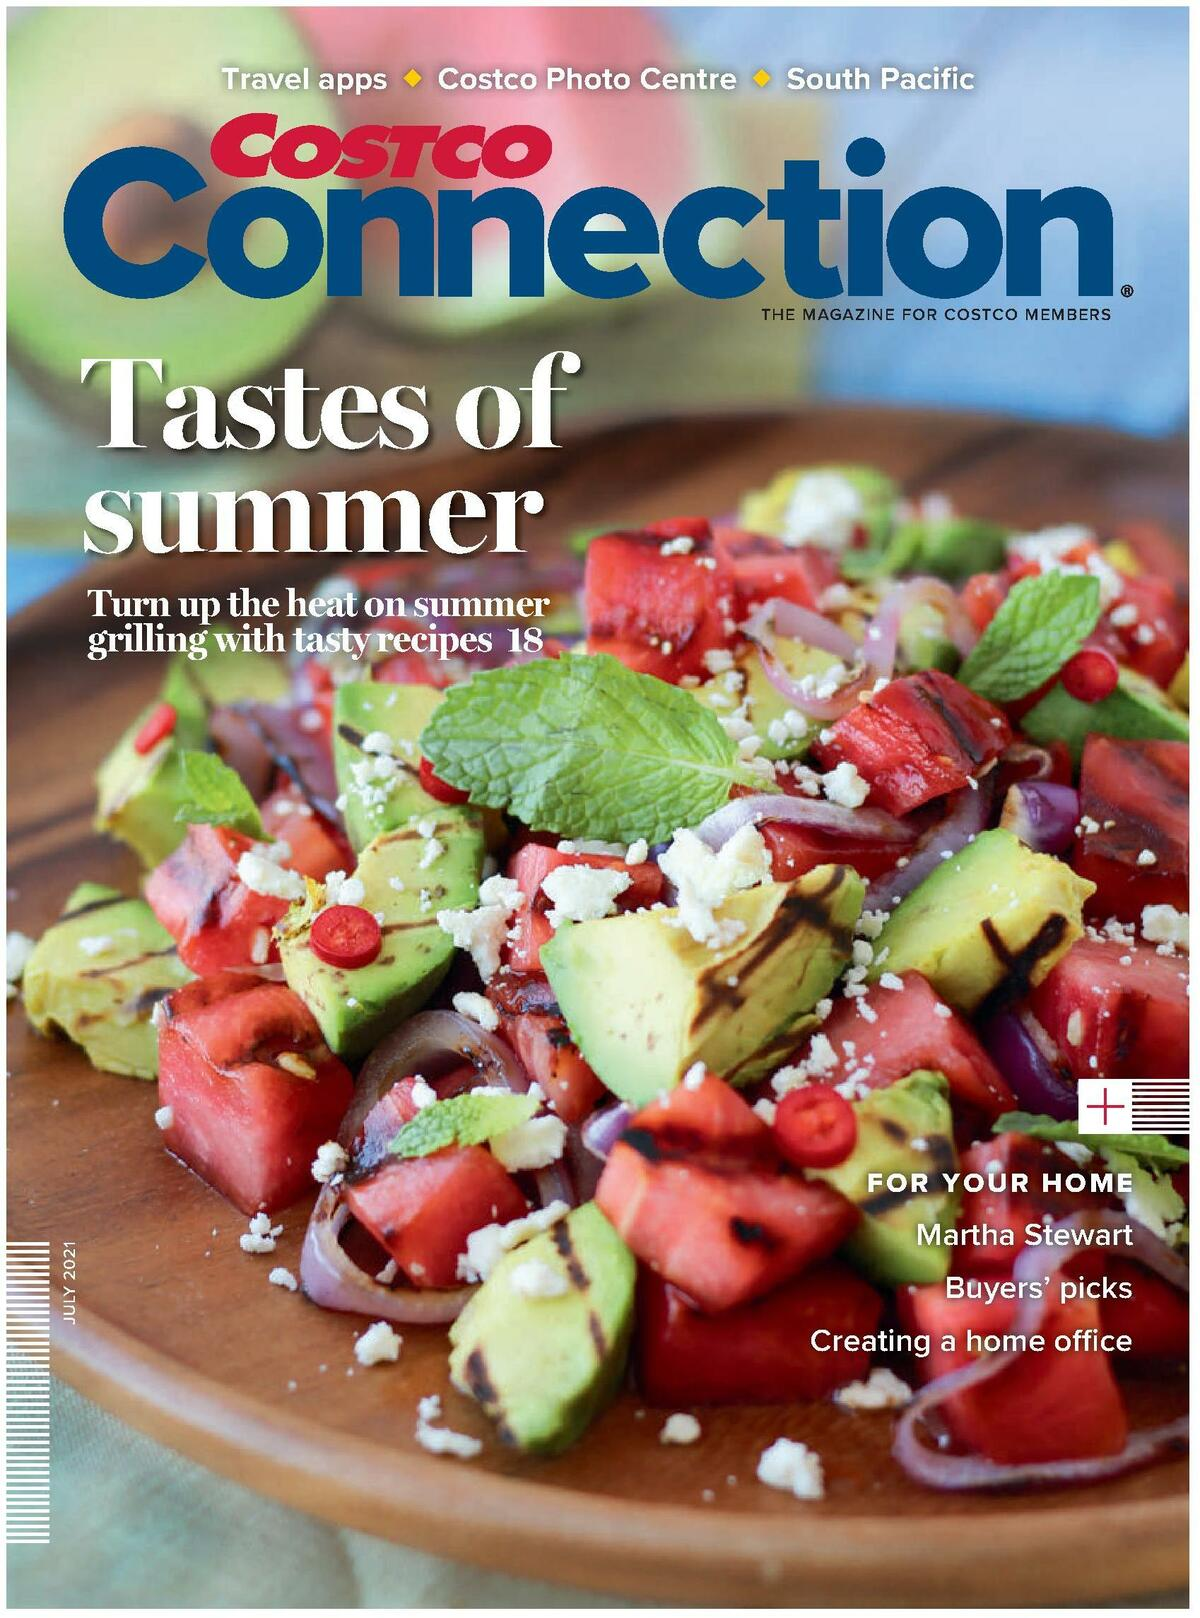 Costco Connection July Flyer from July 1